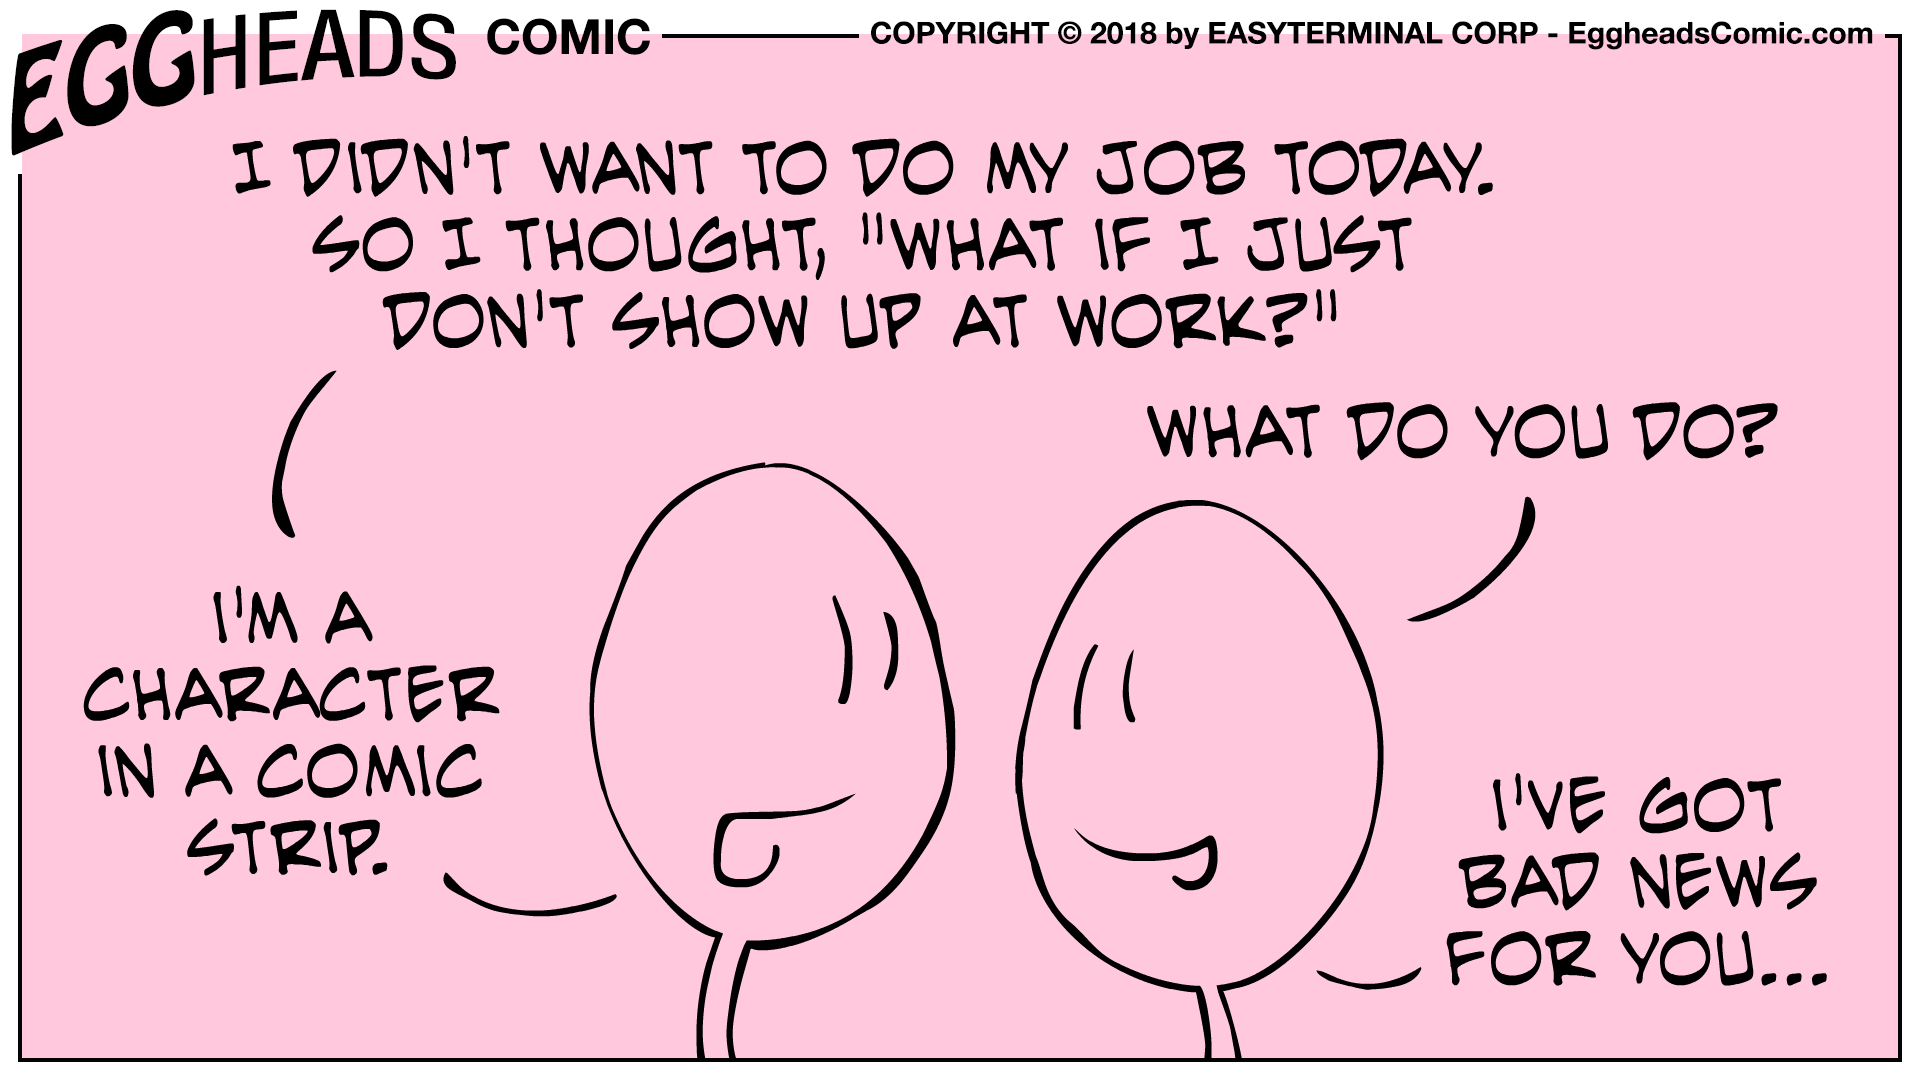 Webcomic Eggheads Comic Strip 070 Don't Show Up At Work